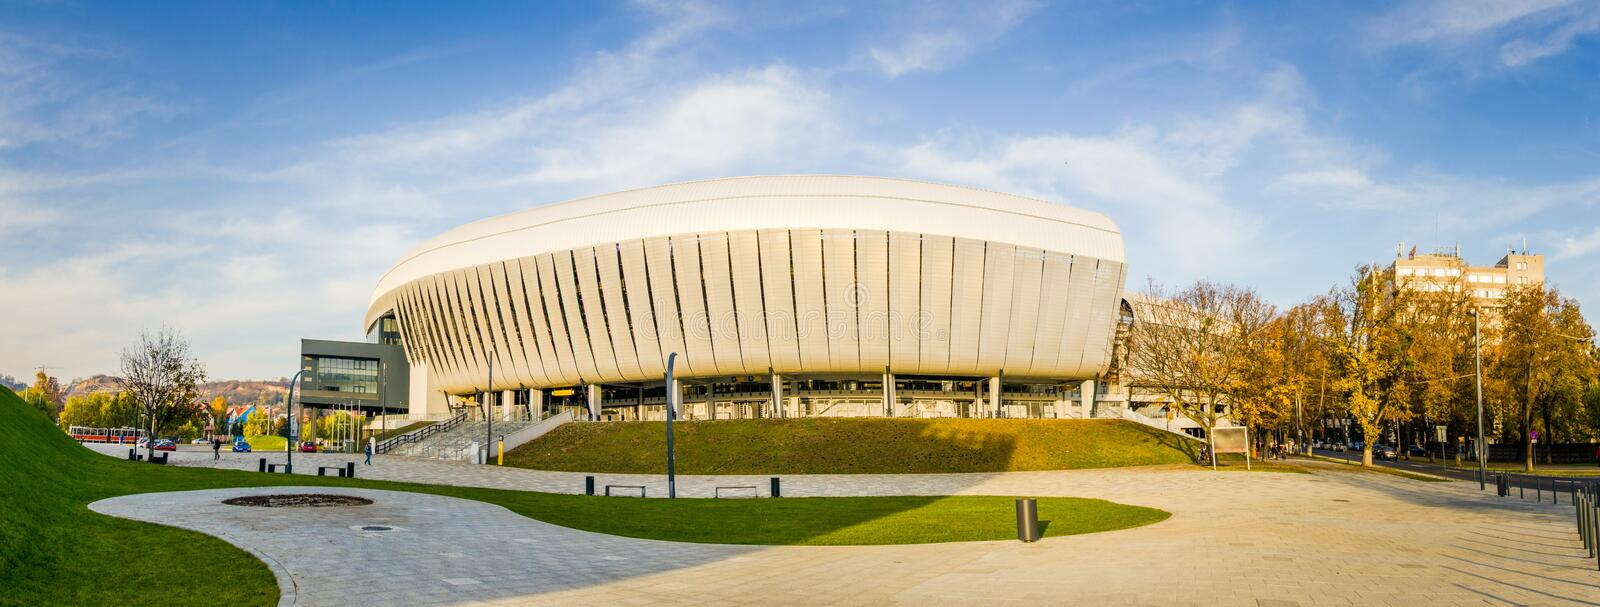 Cluj Arena stadium. NAPOCA, ROMANIA - 6 NOVEMBER 2014: Cluj Arena Stadium with a modern architecture recently built on a sunny autumn day in Cluj stock photos